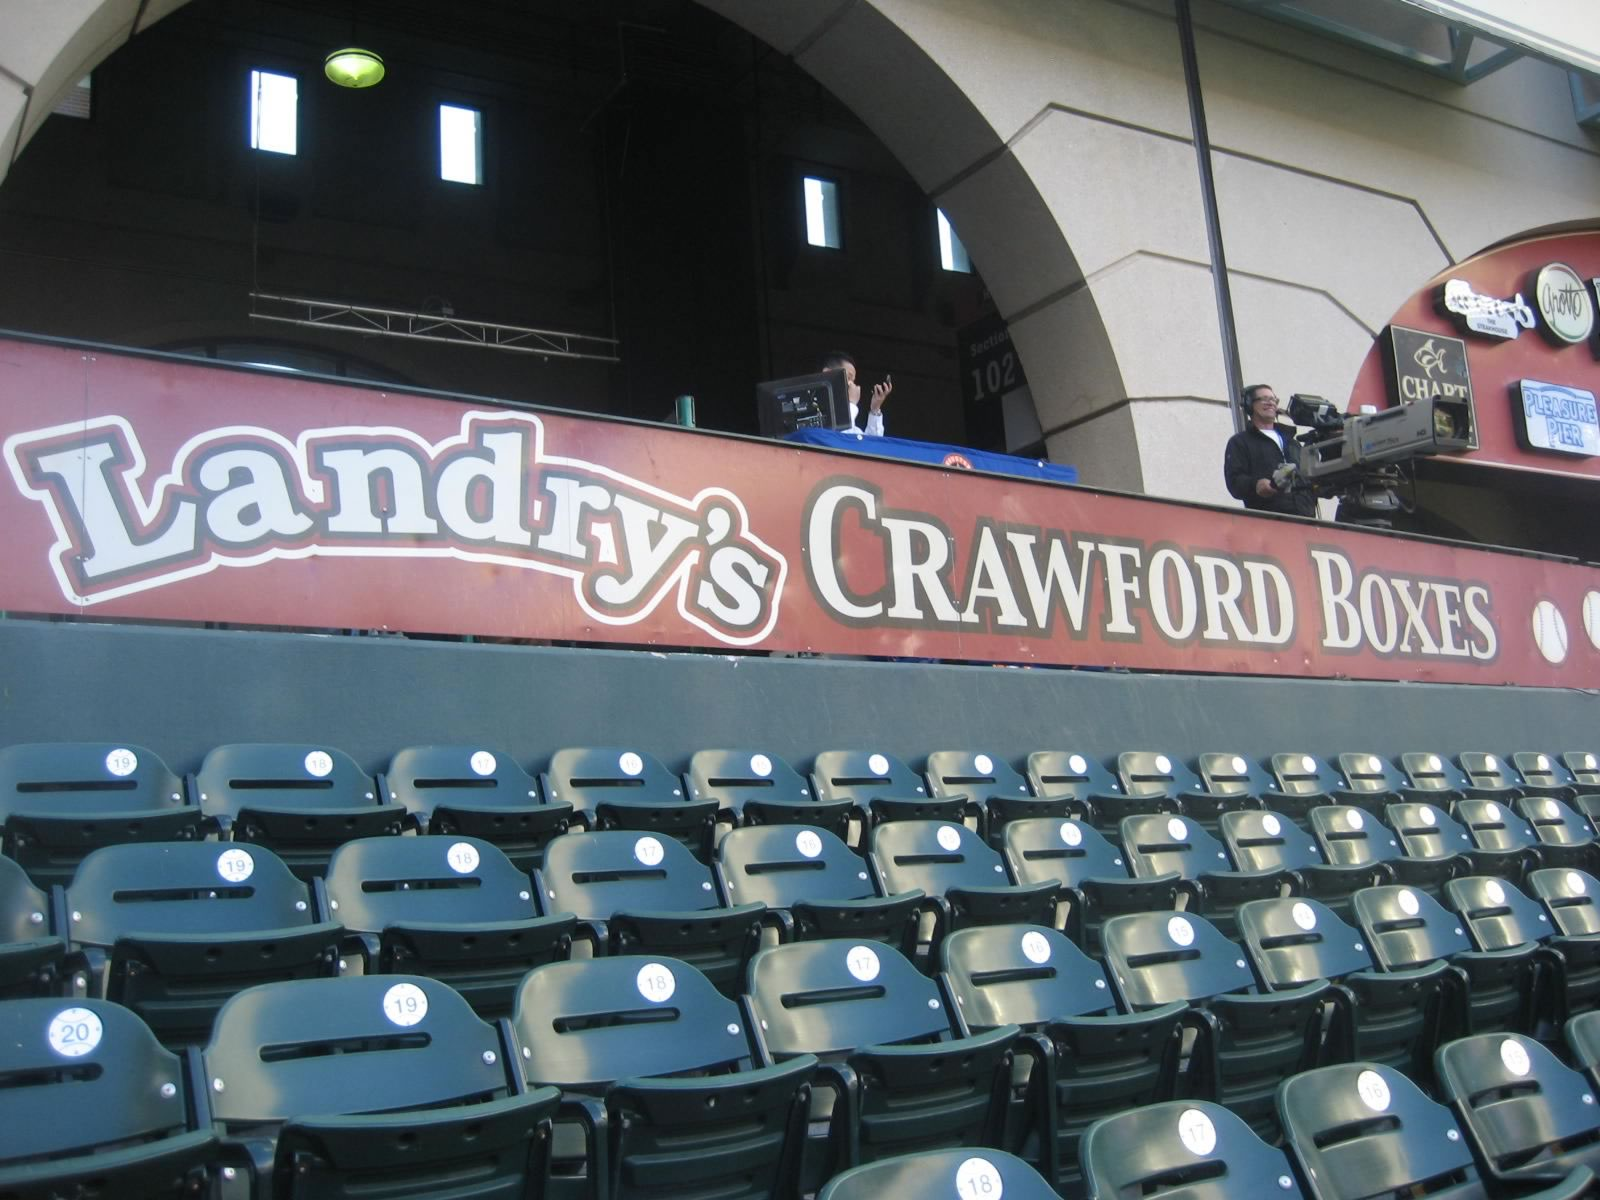 Crawford Boxes